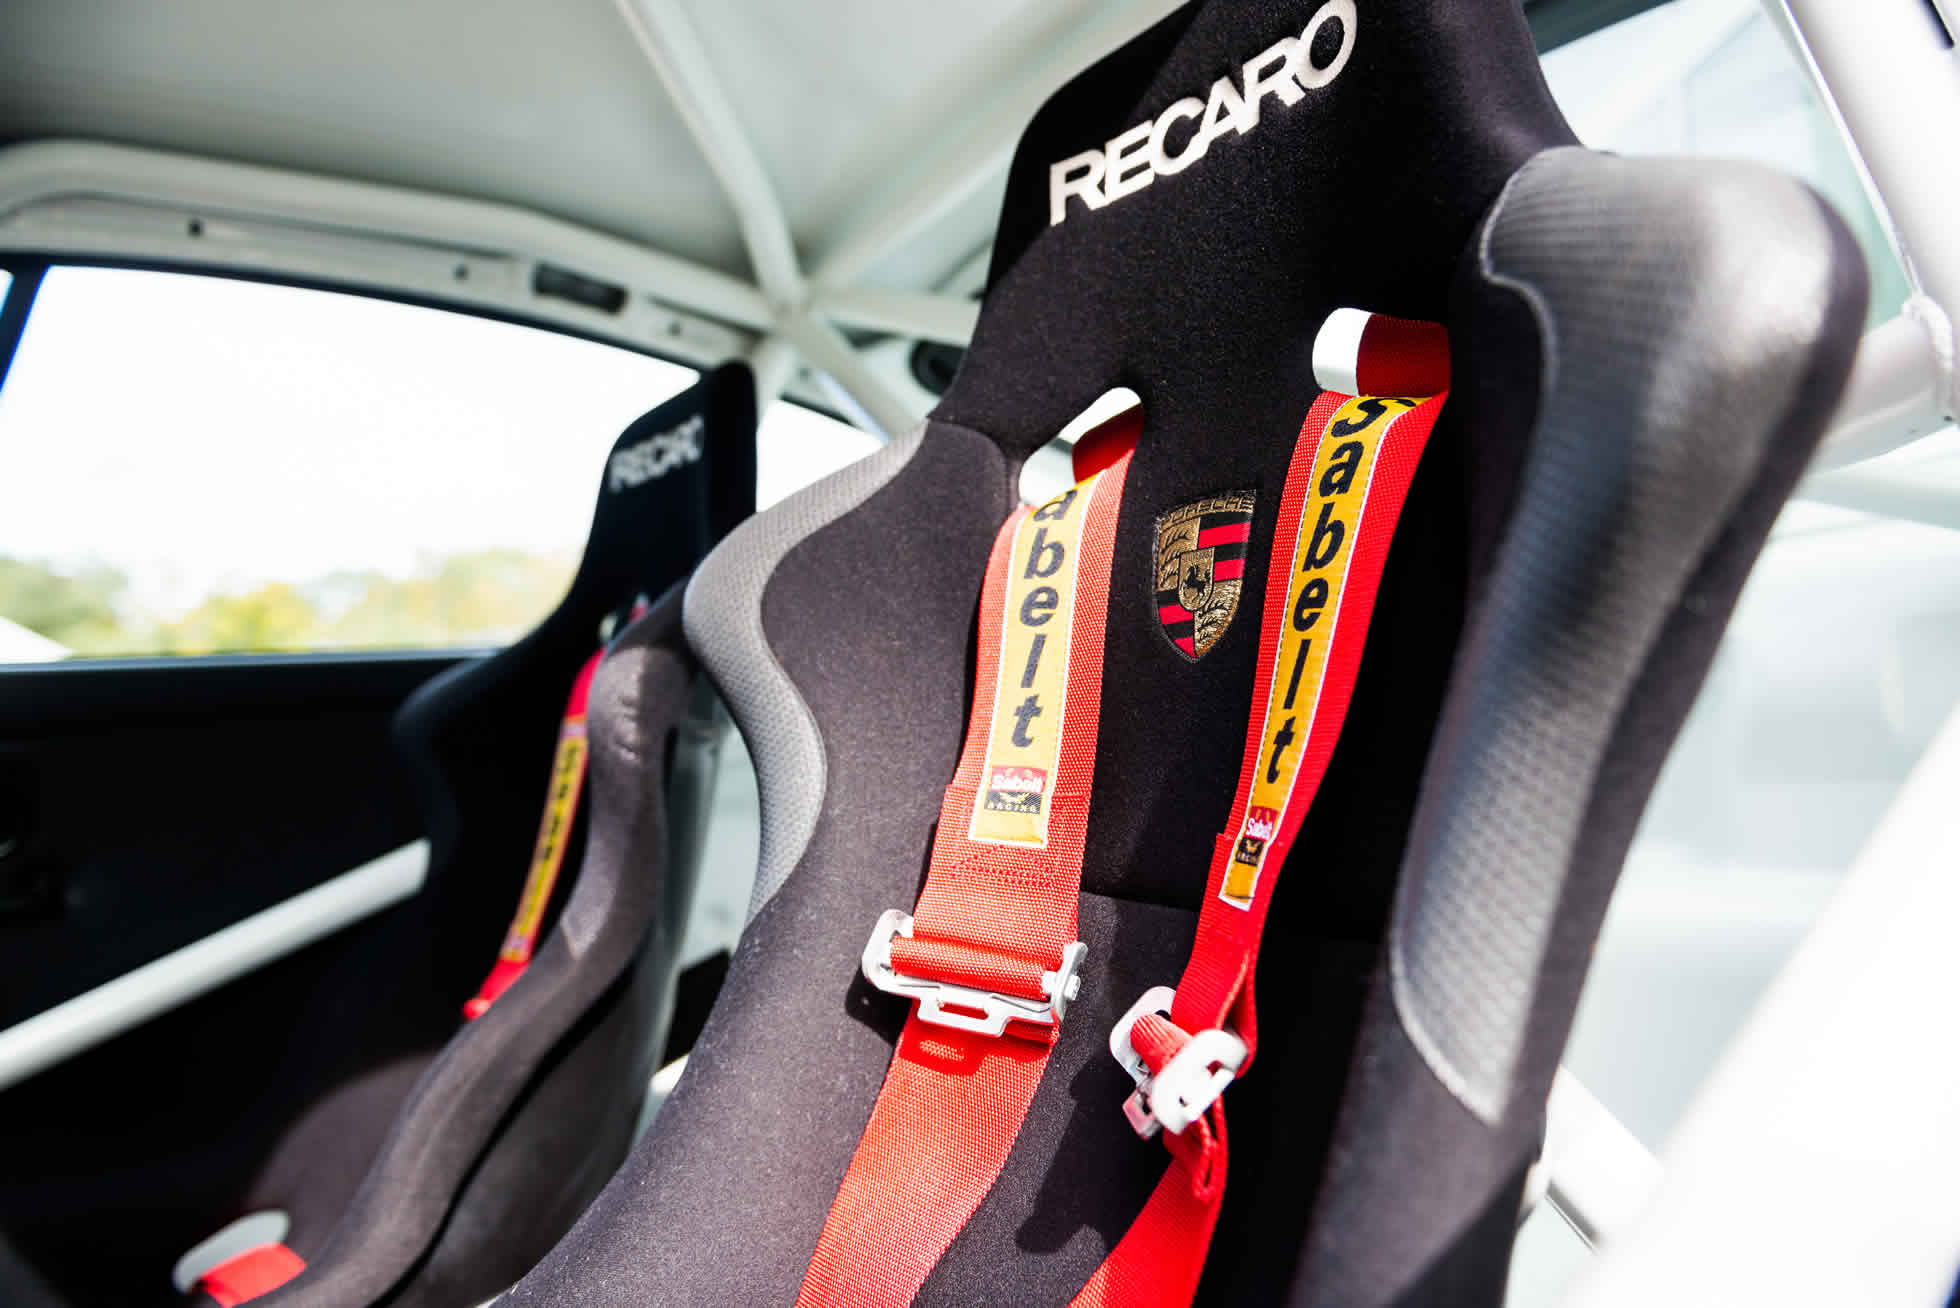 For Sale 1991 Porsche 964 Carrera Cup seat belts